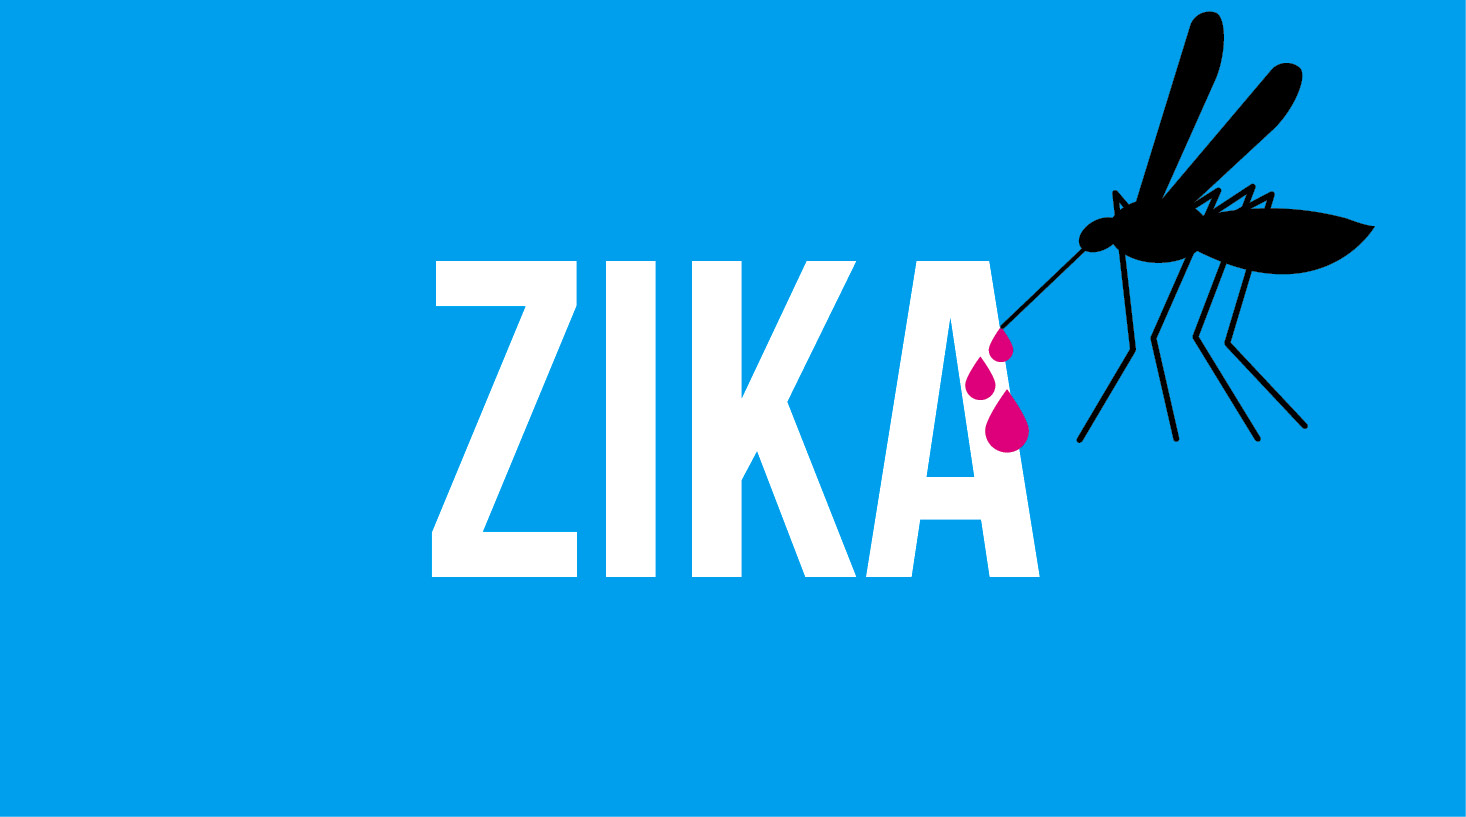 Concerned about Zika?